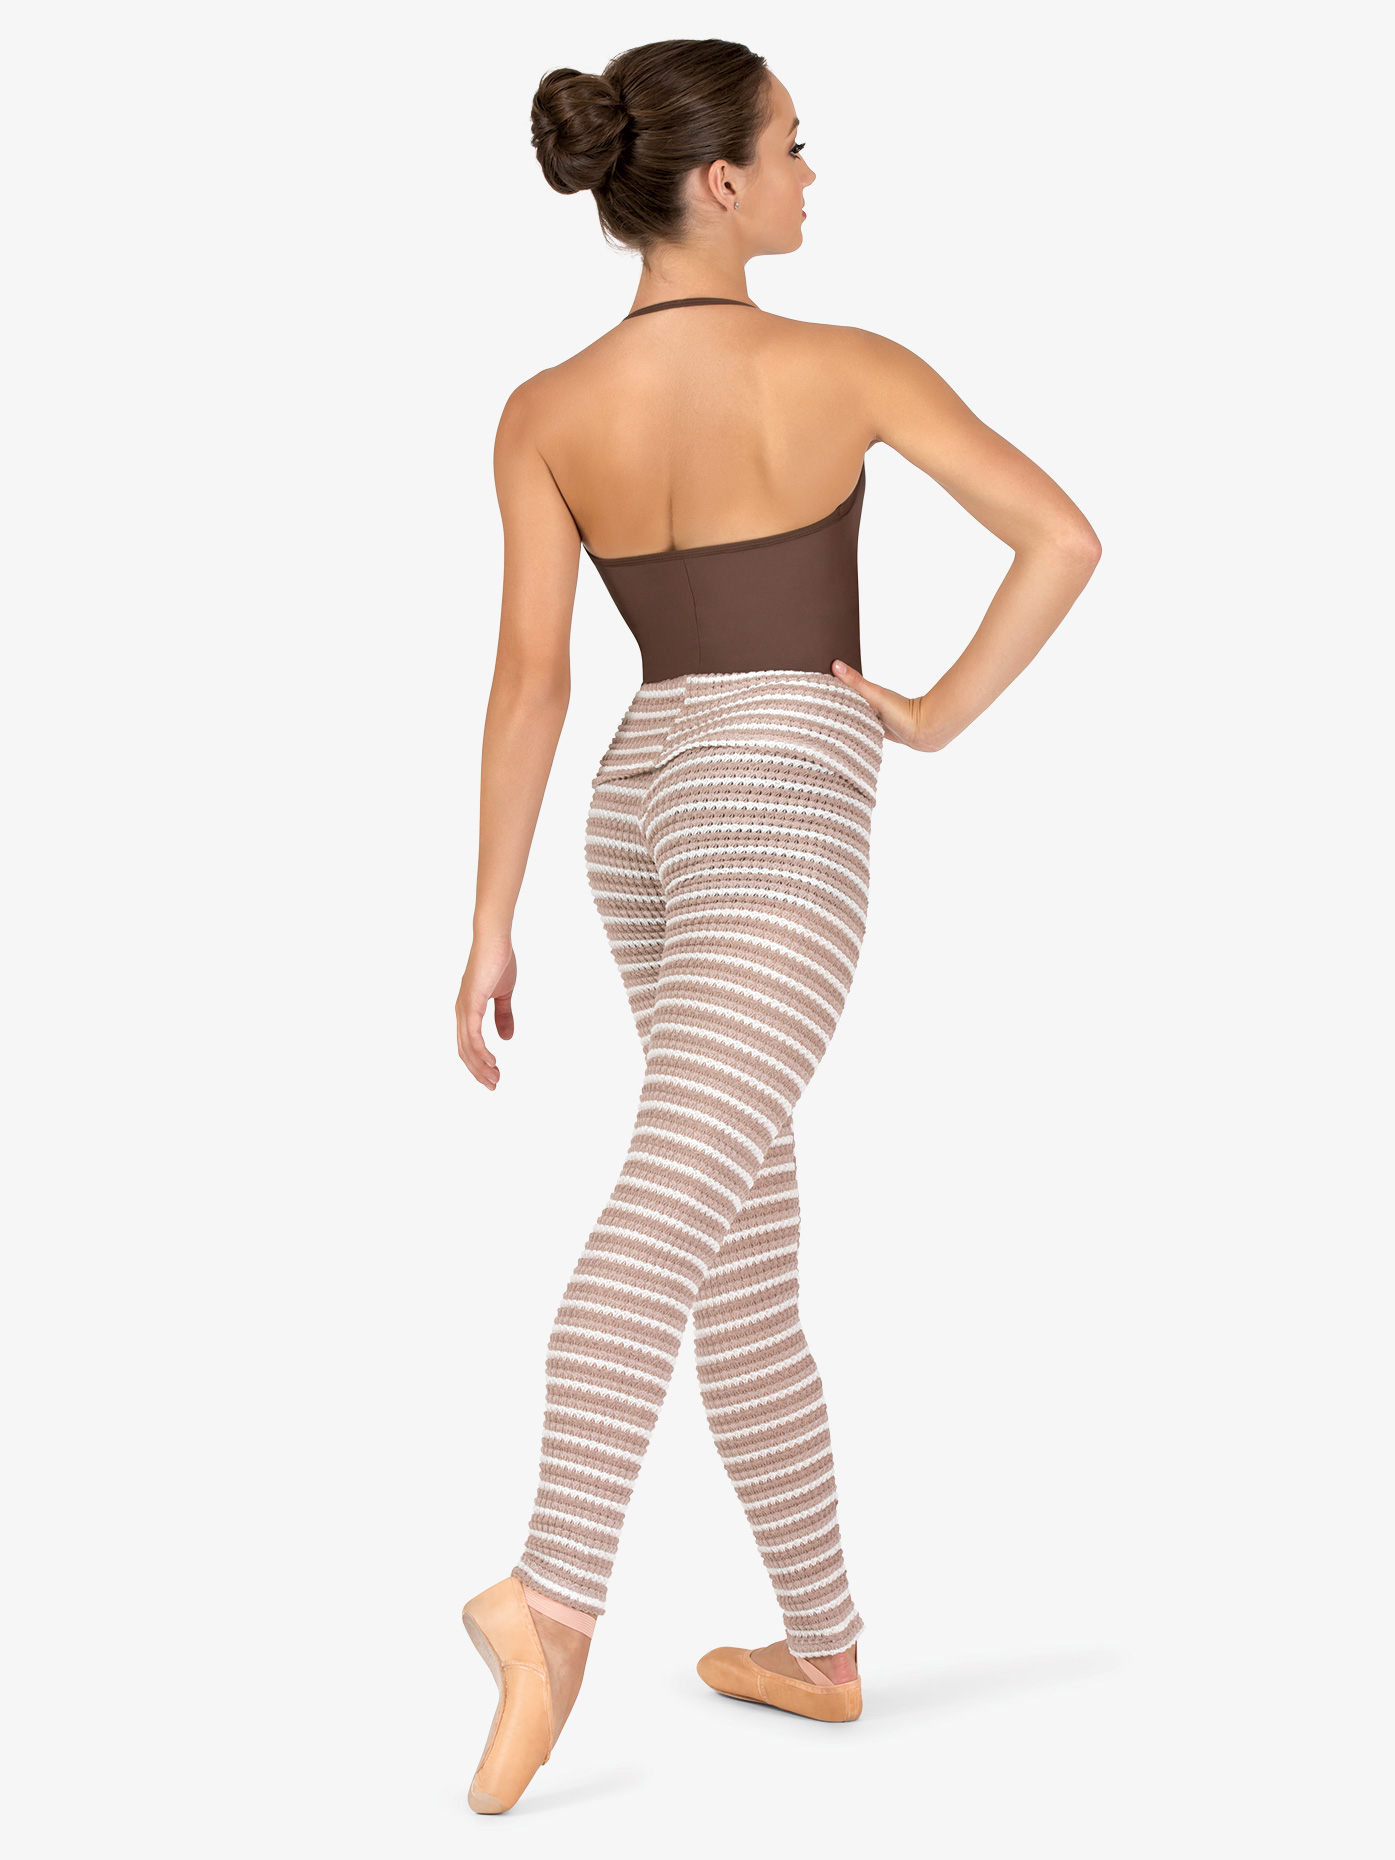 Natalie Womens Striped Knit Warm Up Roll Down Leggings N9104